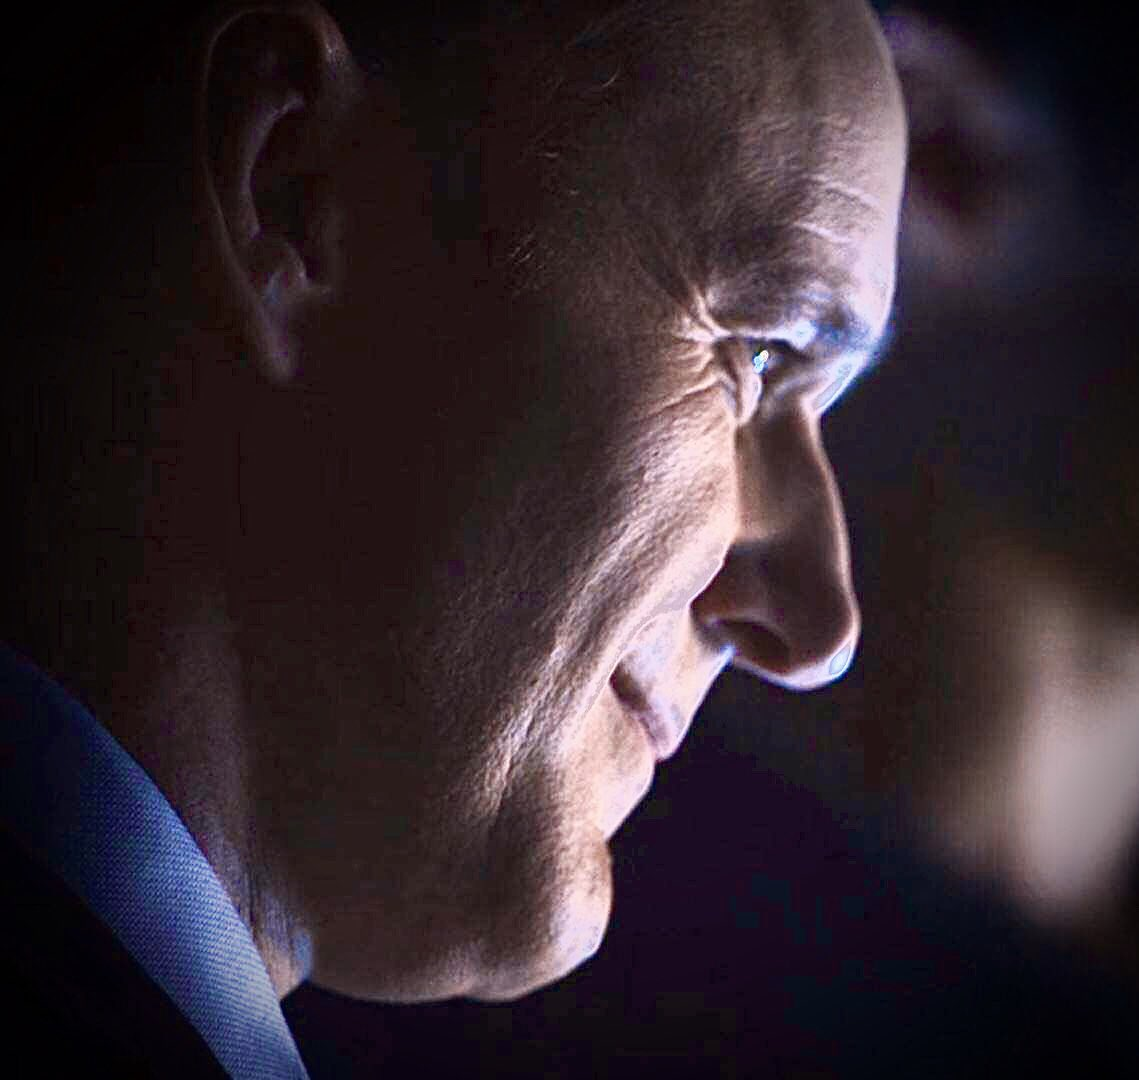 I have no words 🤤🤤 #CoulsonLives #PhilCoulson #sexyaf